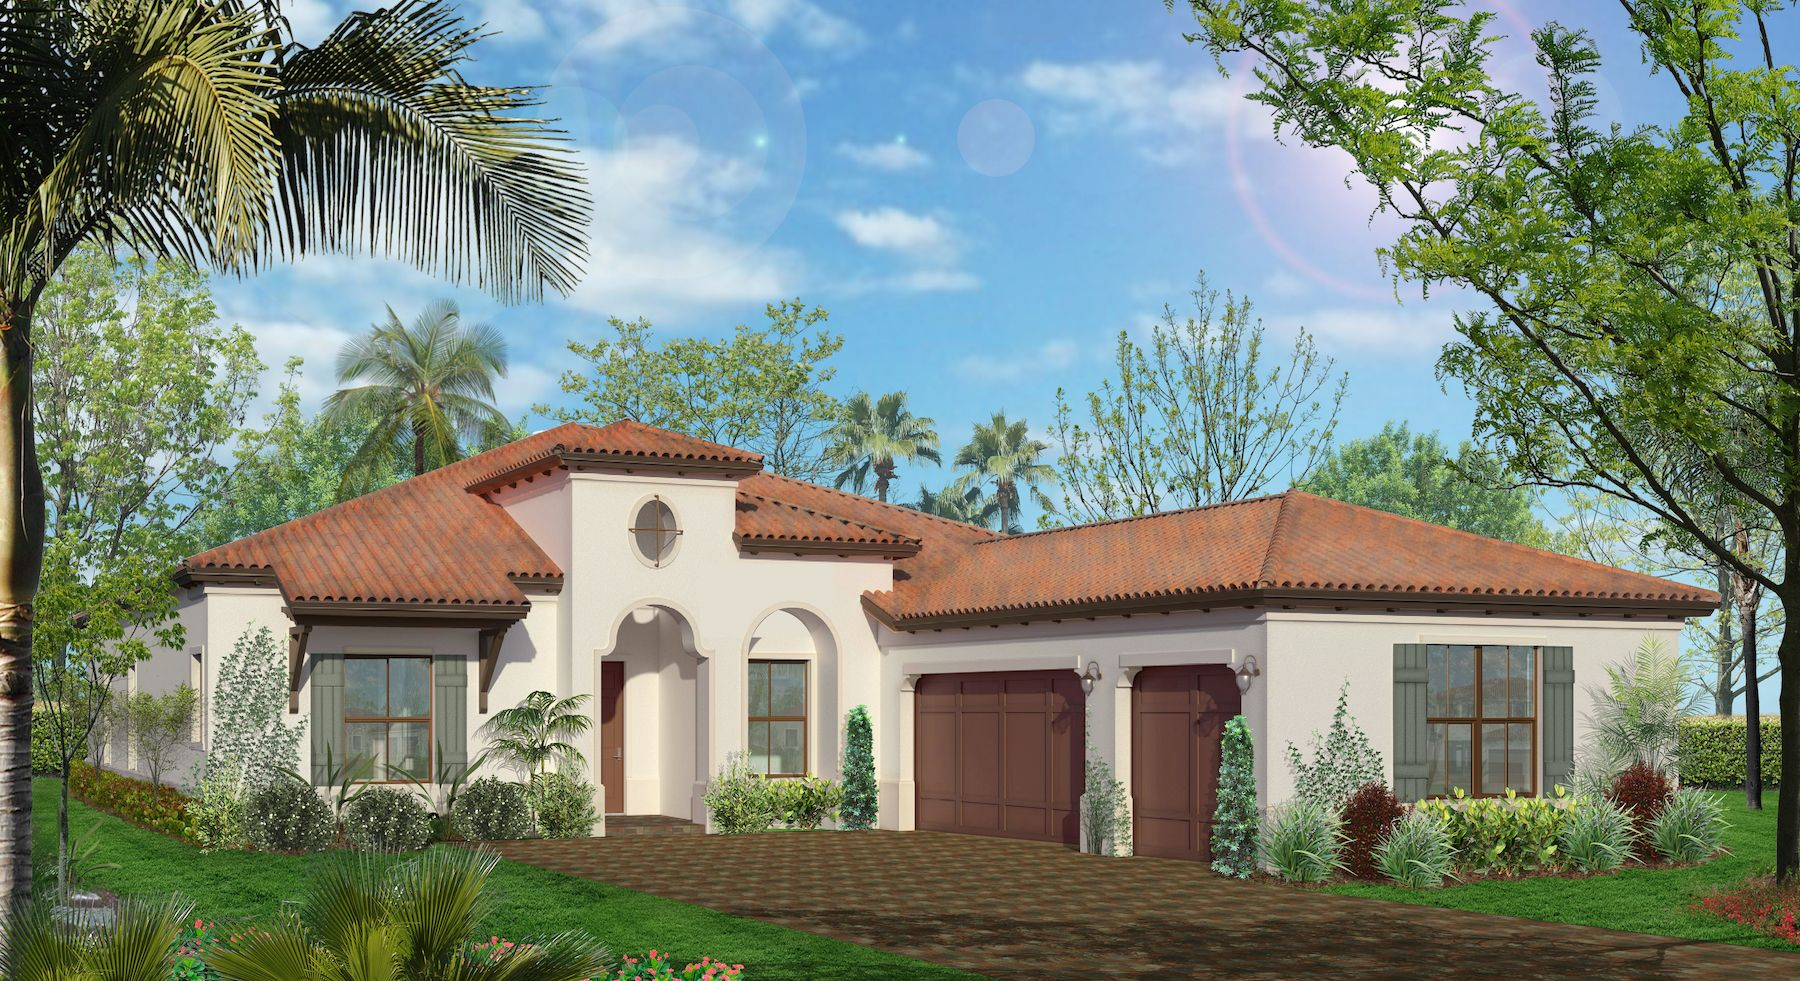 8820 waterview terrace provence parkland florida 33076 for Provence home